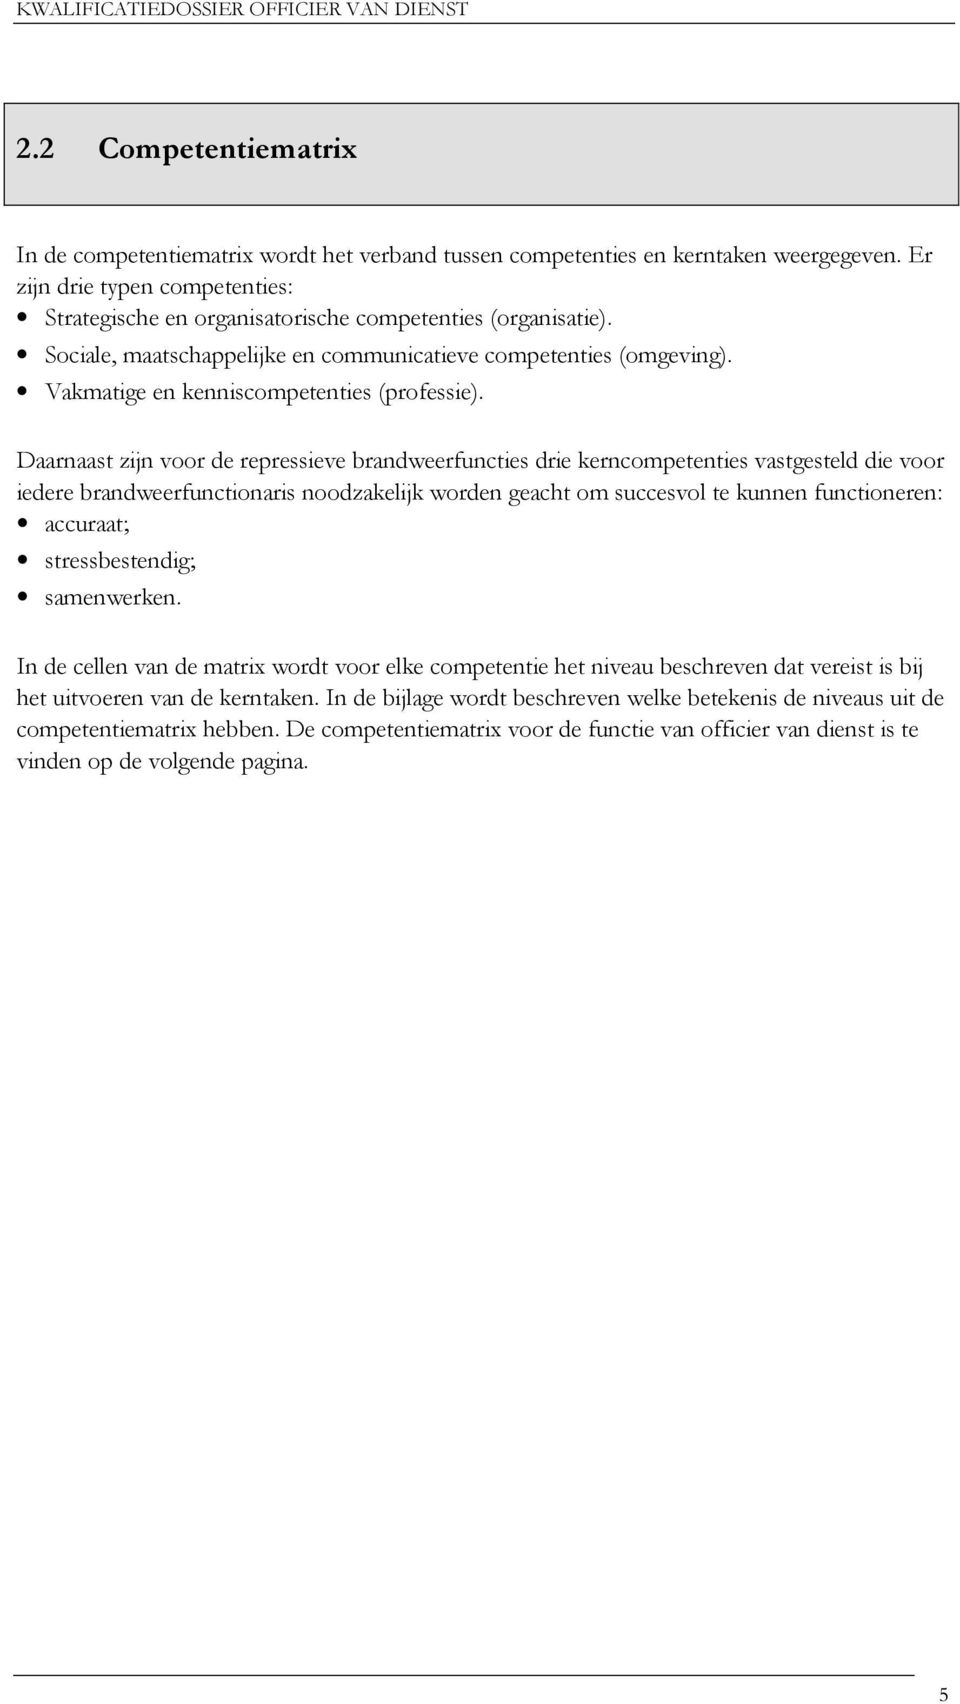 Vakmatige en kenniscompetenties (professie).